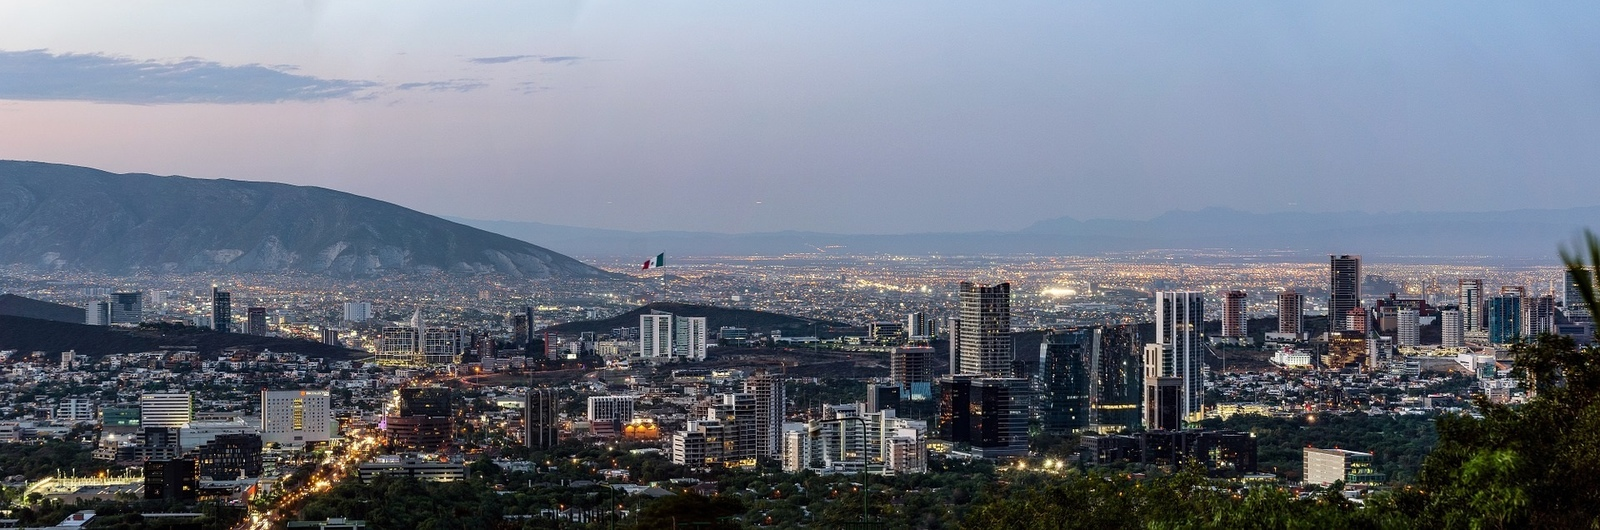 monterrey city header